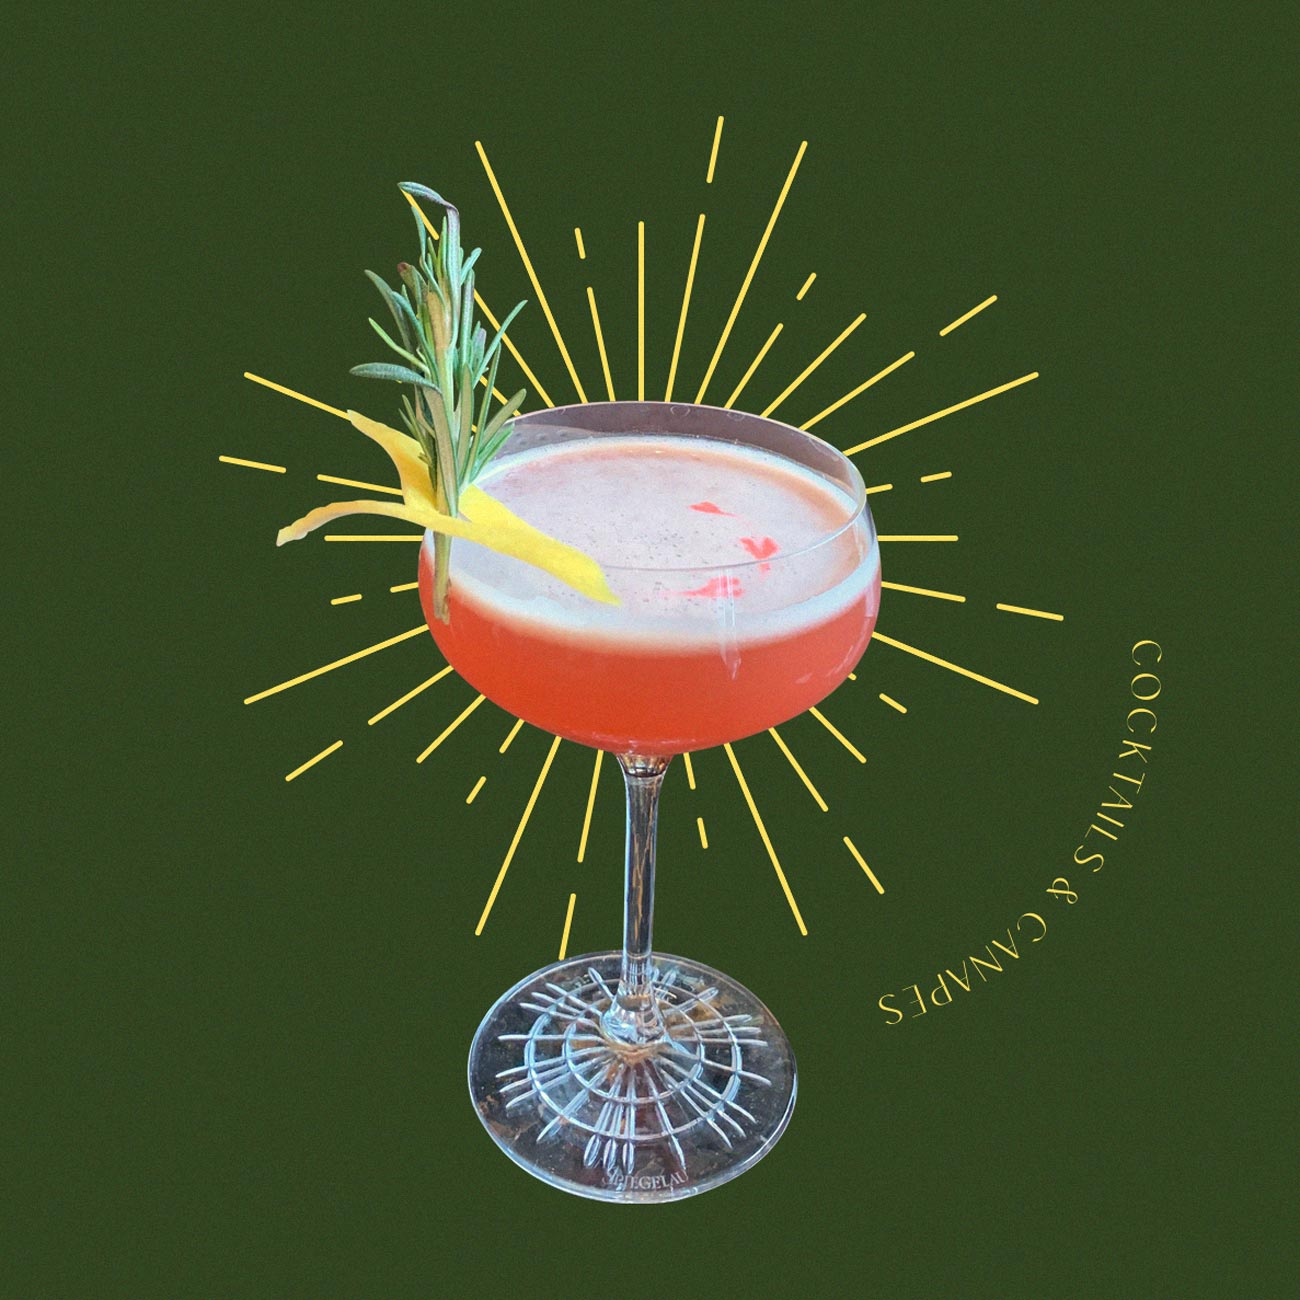 A festive cocktail